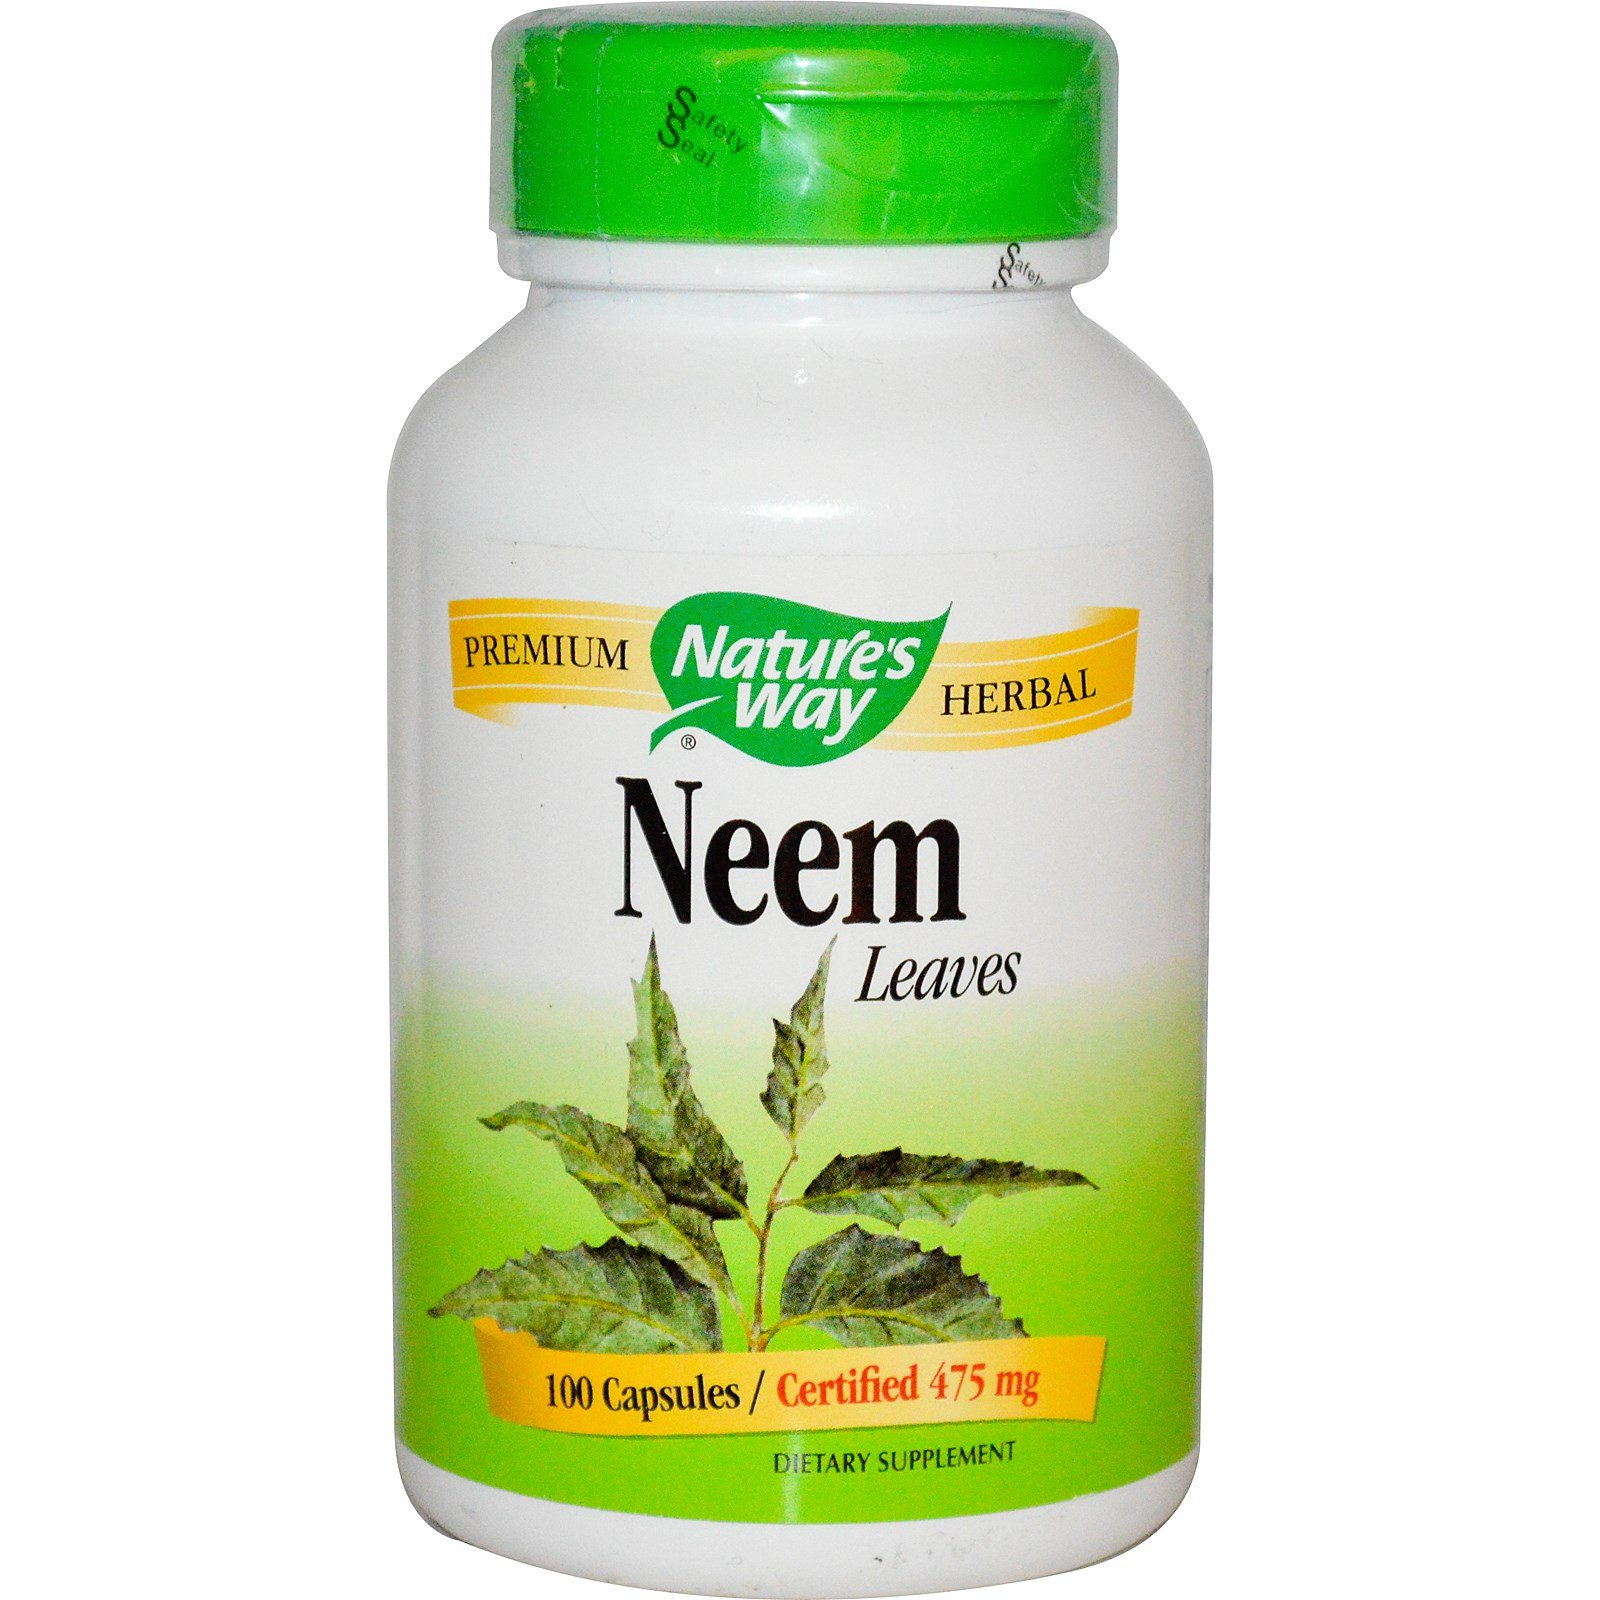 Nature's Way Neem Leaves 100 caps ,pack of 3